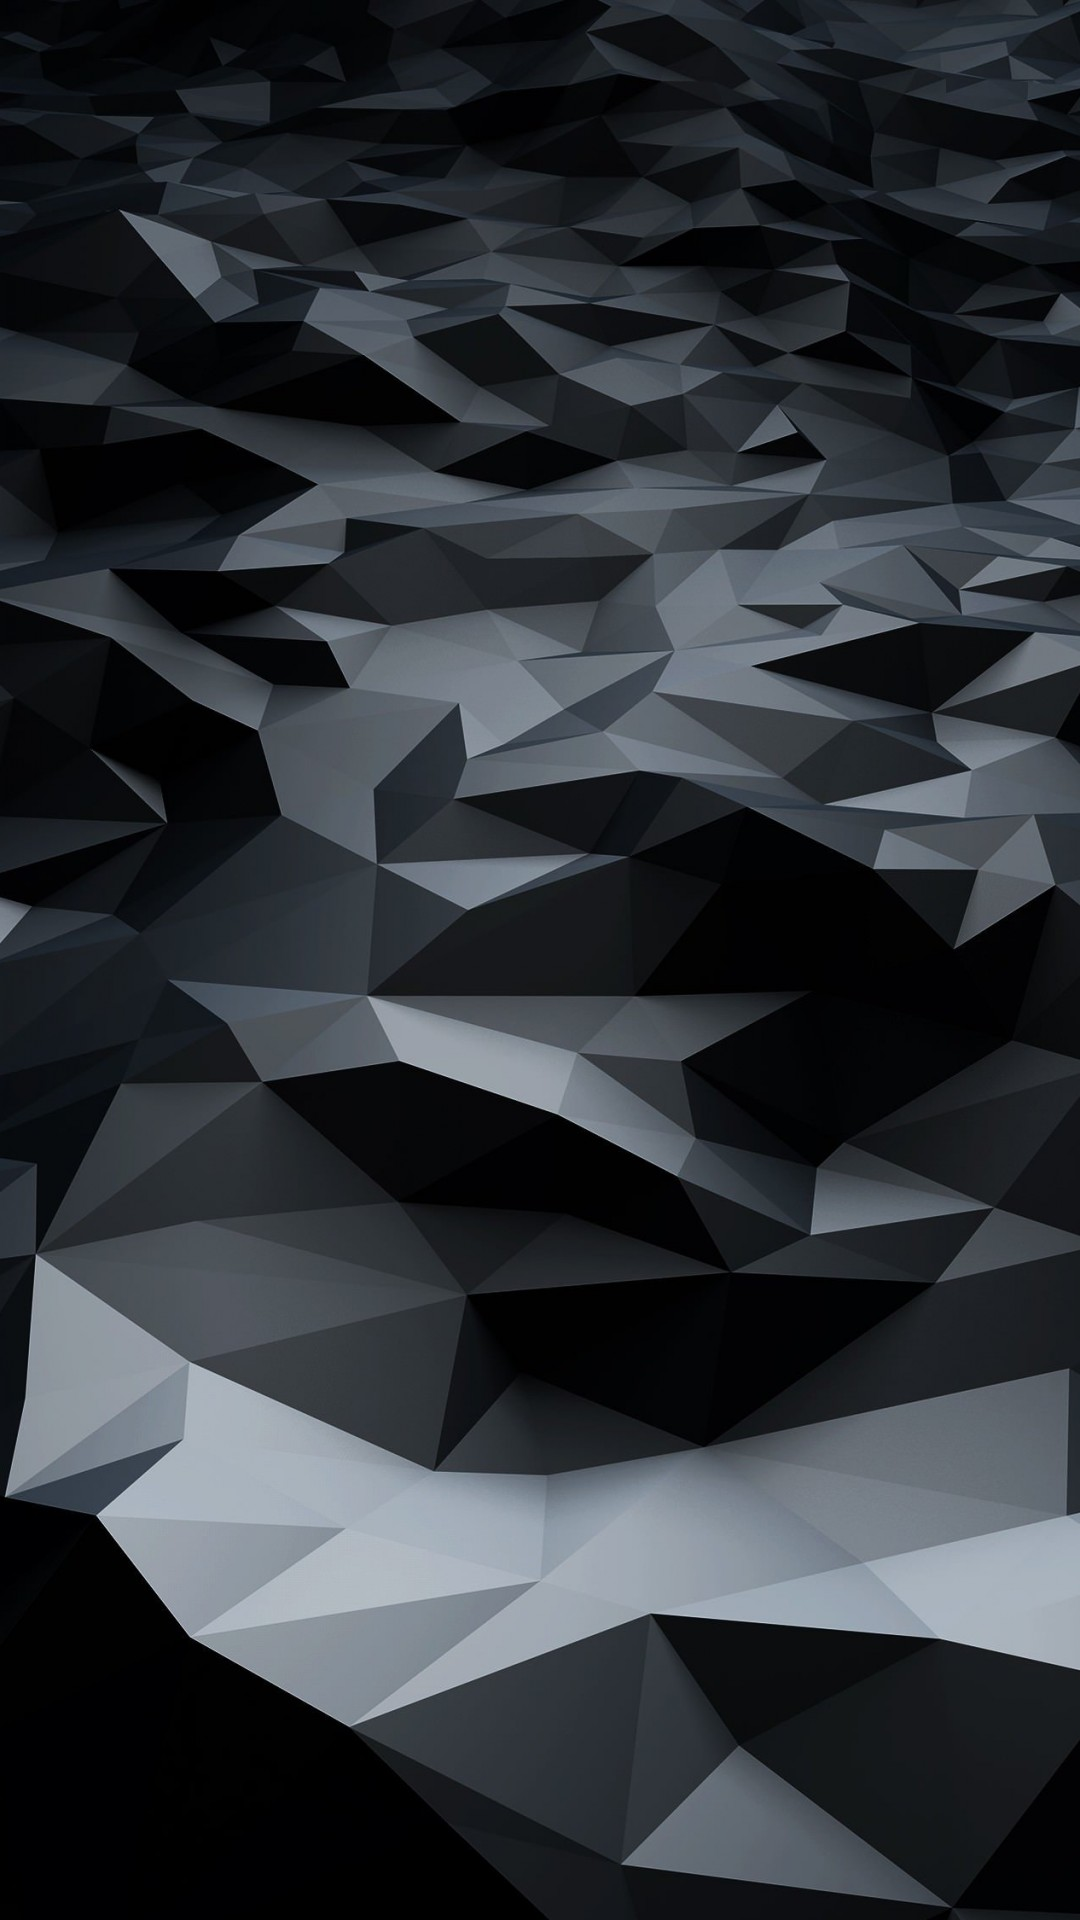 Abstract Black Low Poly Wallpaper for SONY Xperia Z1